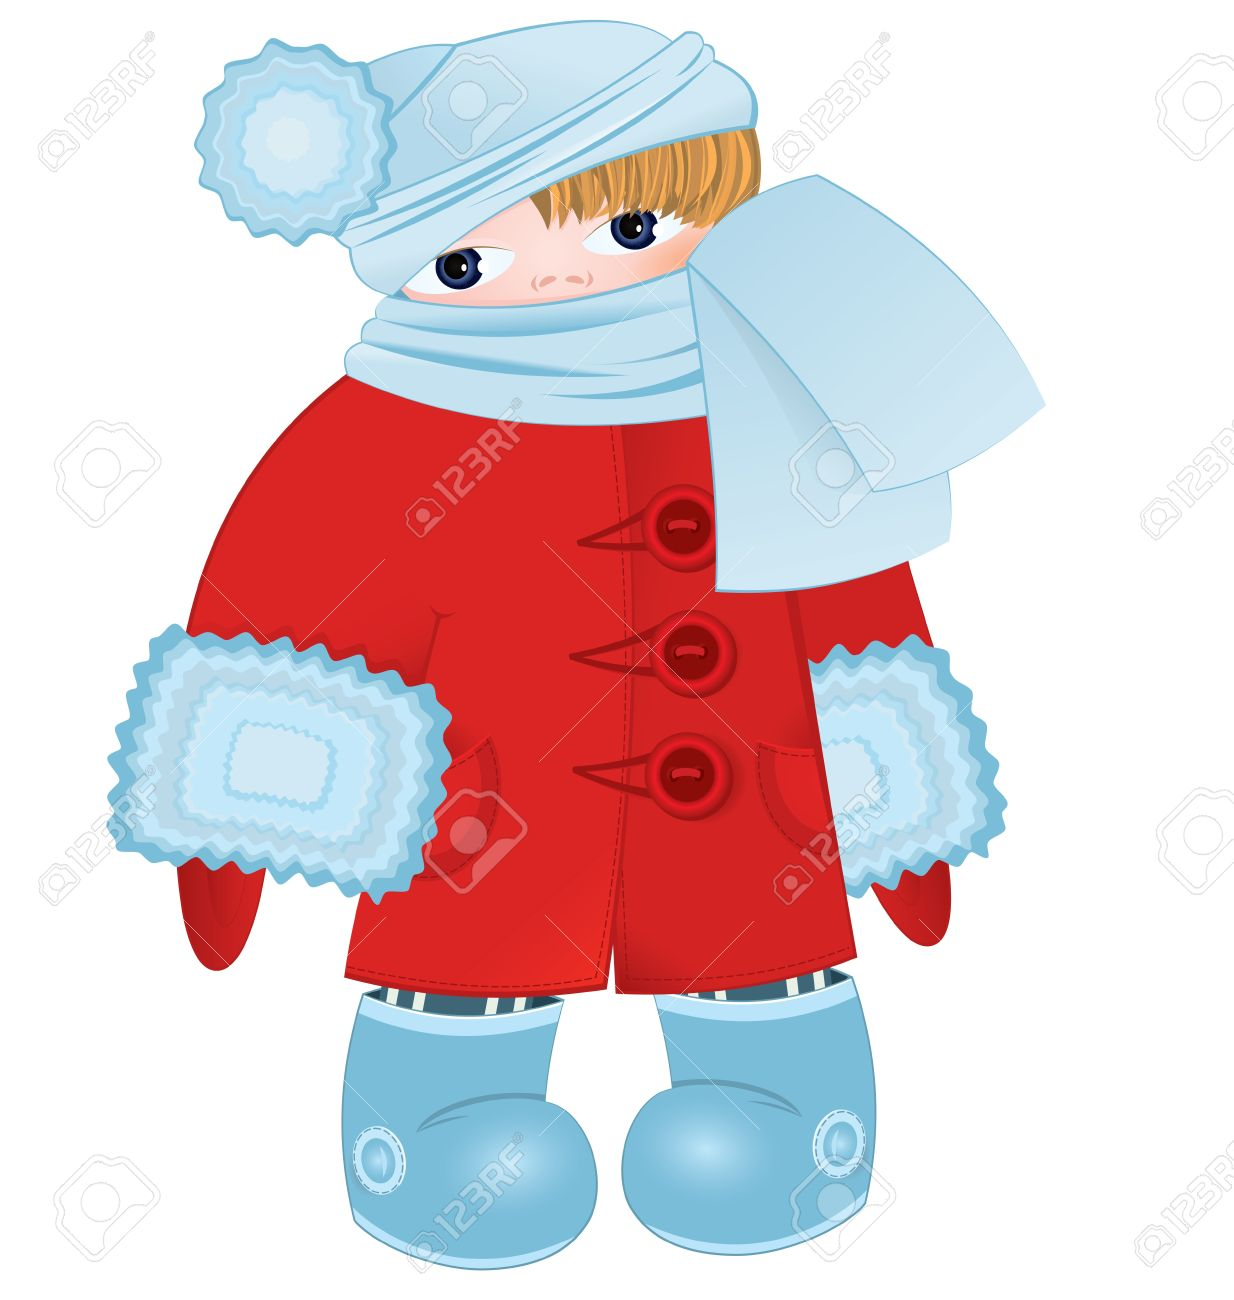 d7bfa23ee650 Illustration Of A Cartoon Kid Standing In Red Winter Coat Ant ...